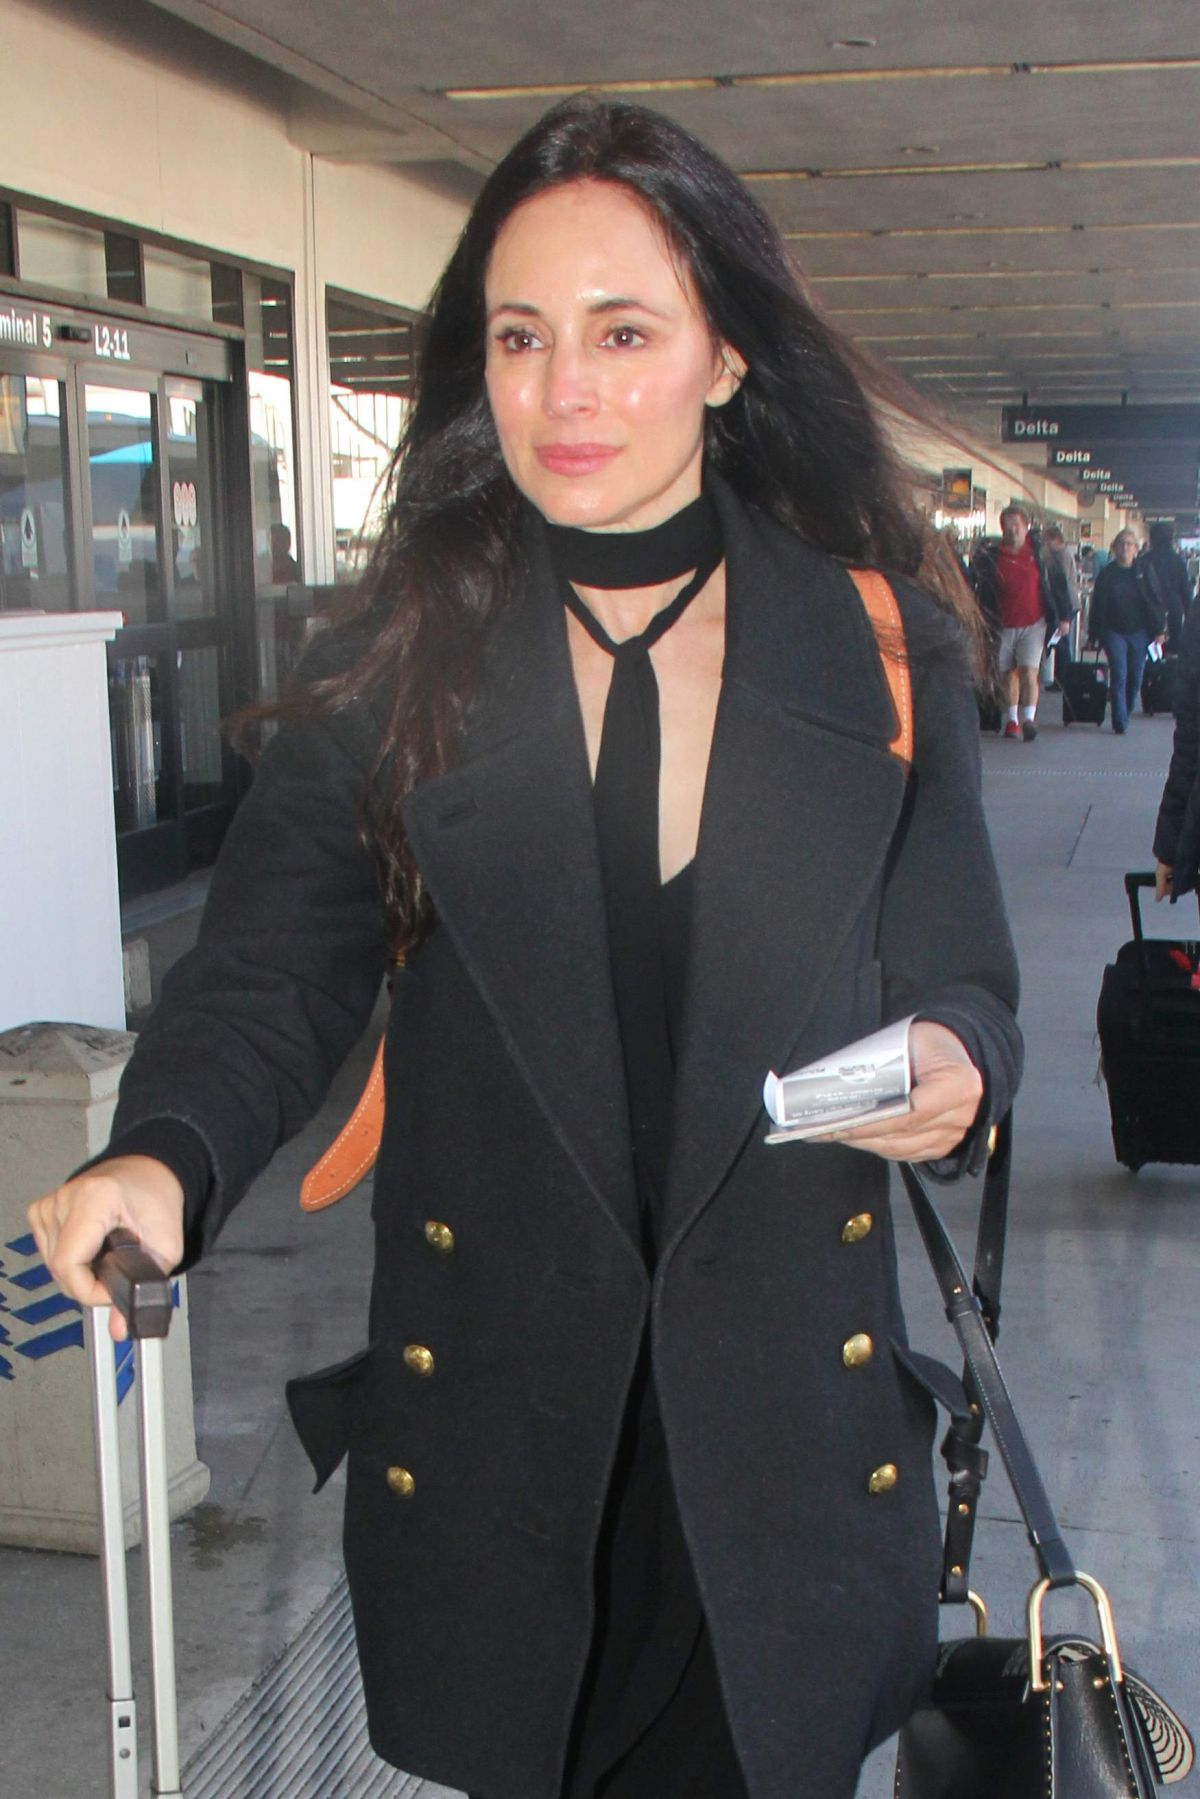 MADELEINE STOWE at Los Angeles International Airport 11/12/2015